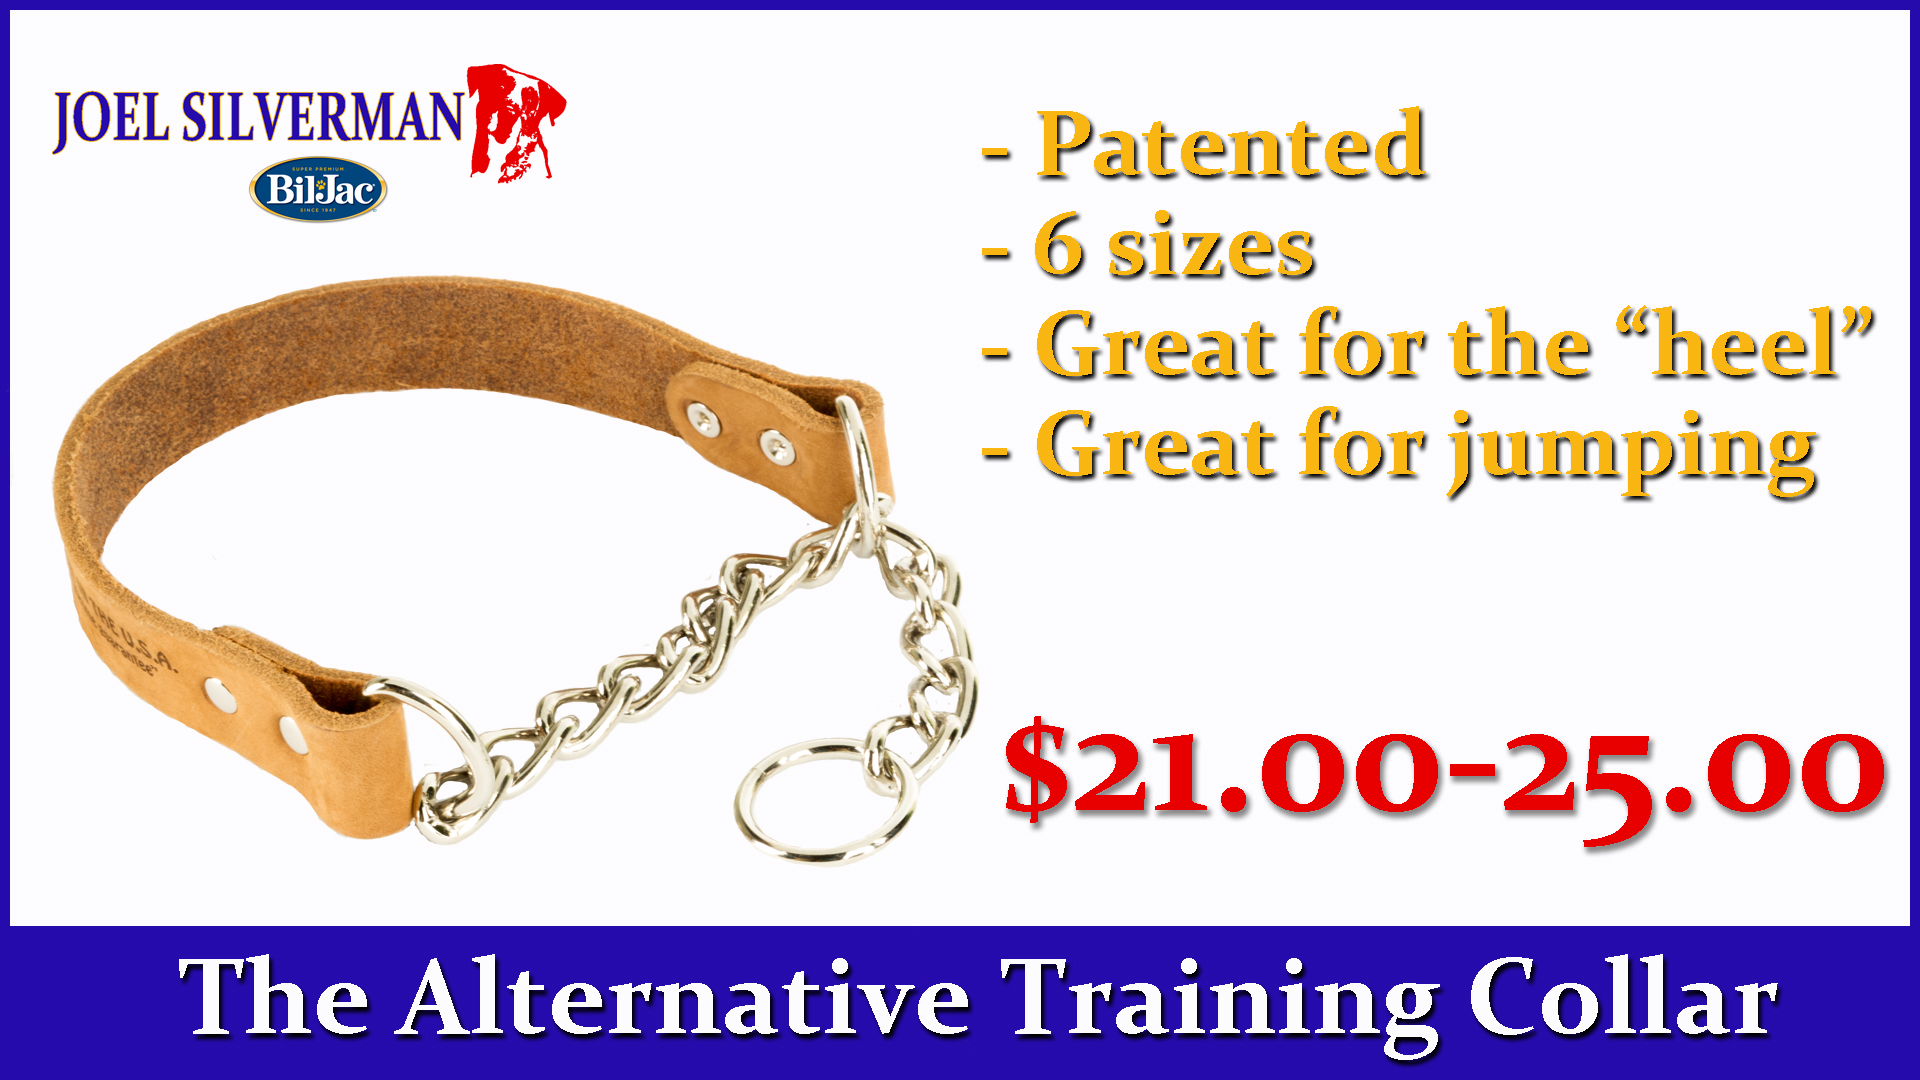 Joel Silvermans Alternative Training Collar